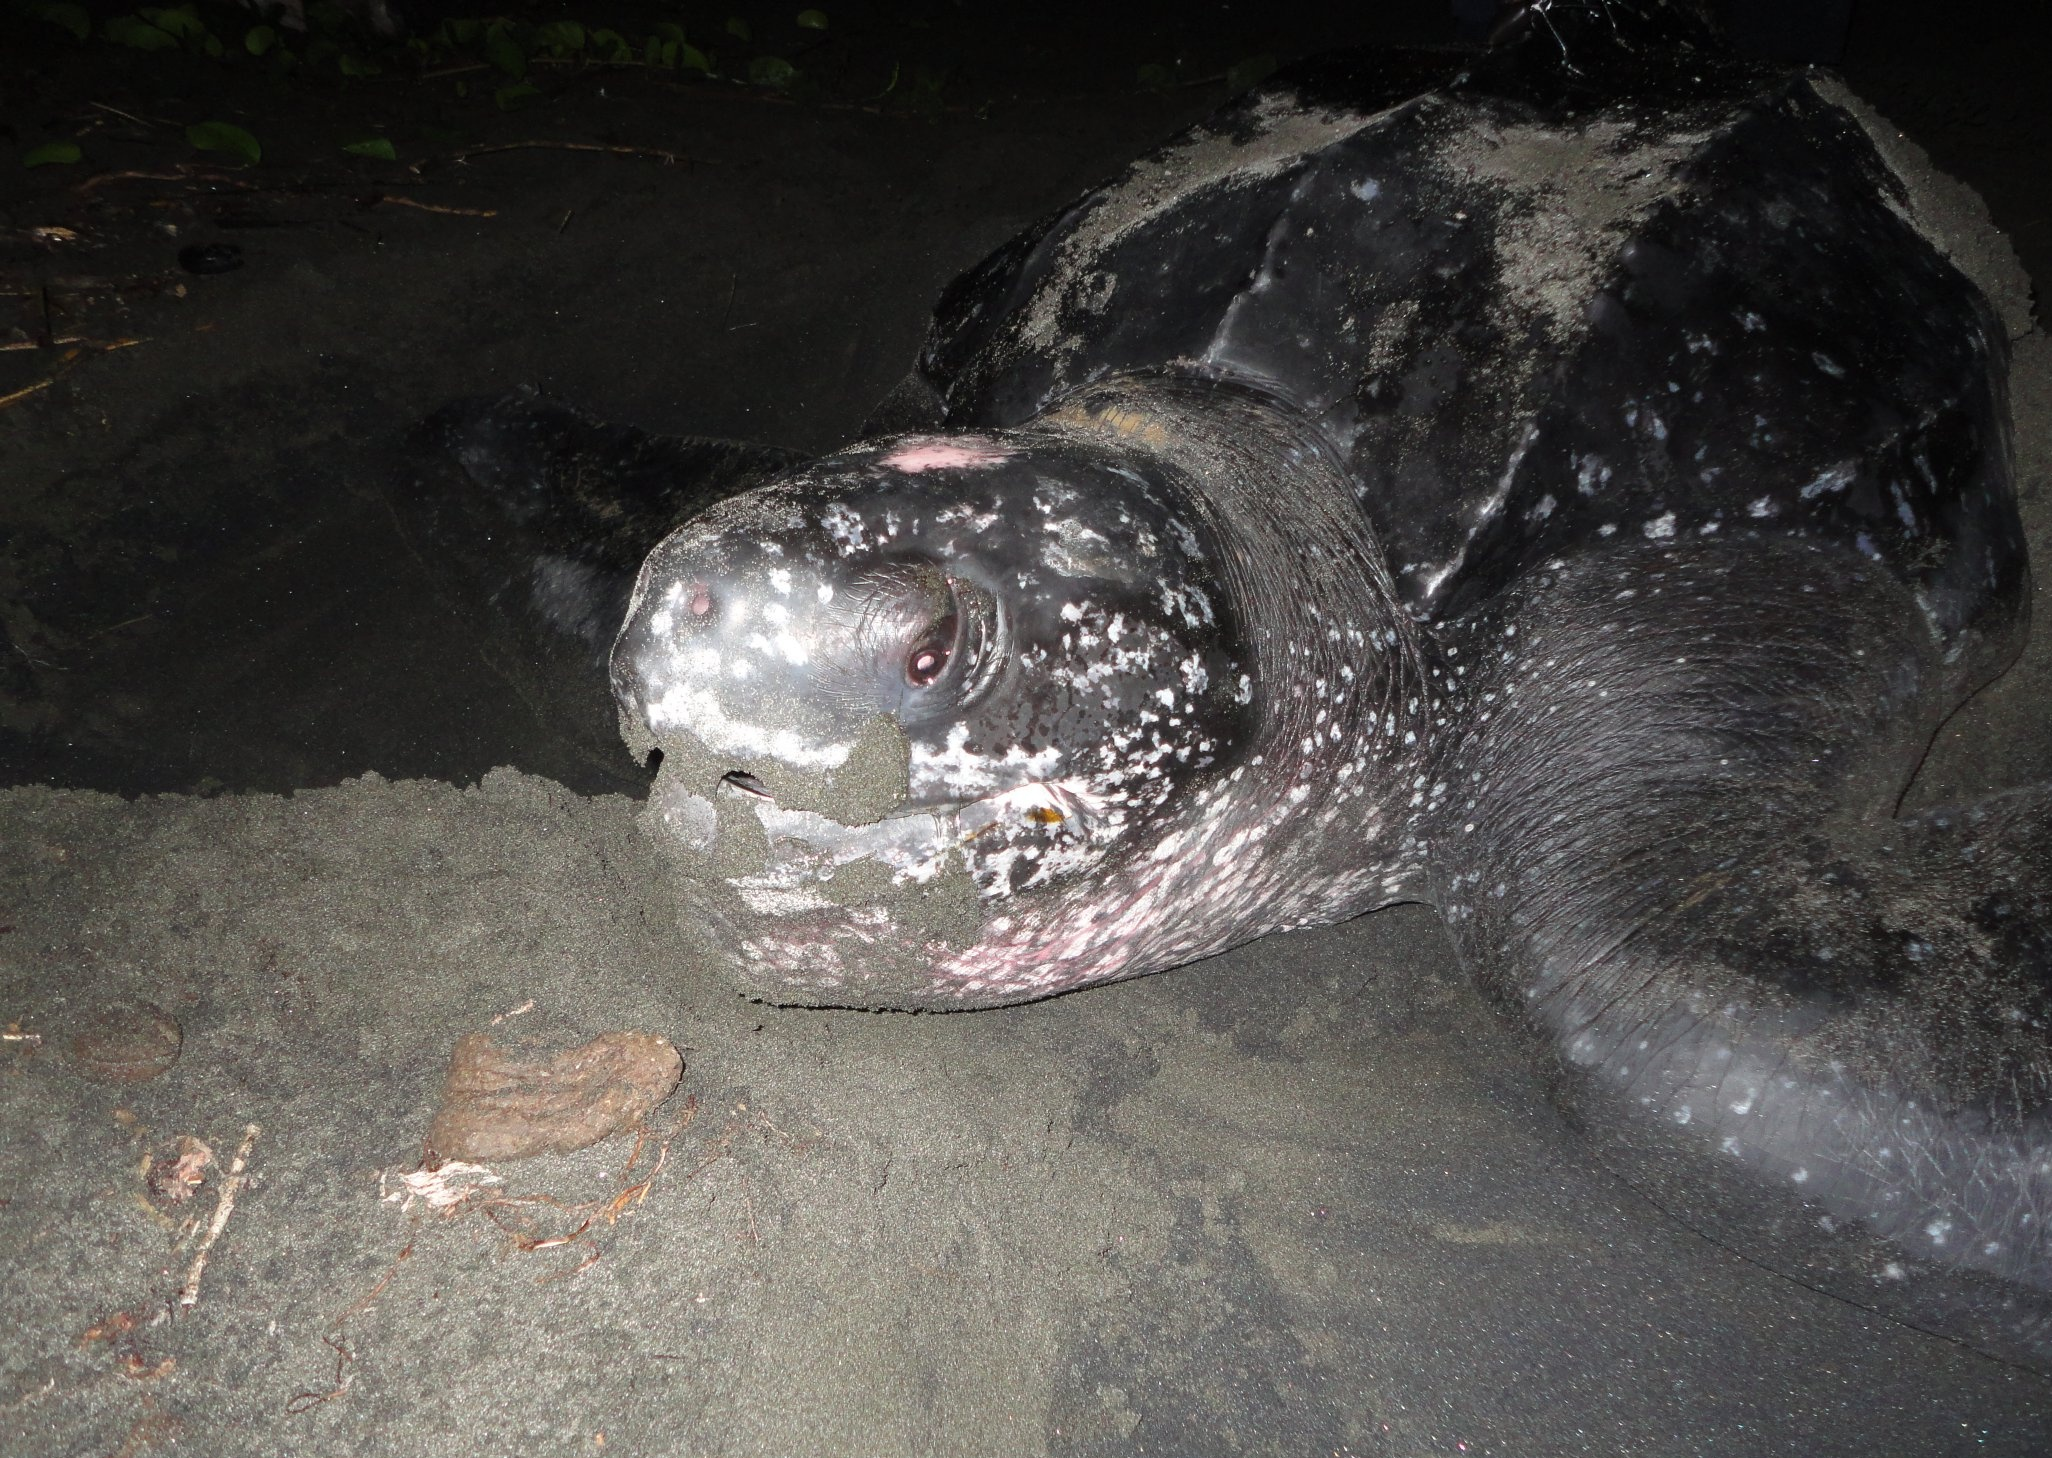 Leatherback sea turtle in Soropta Beach, Panama.